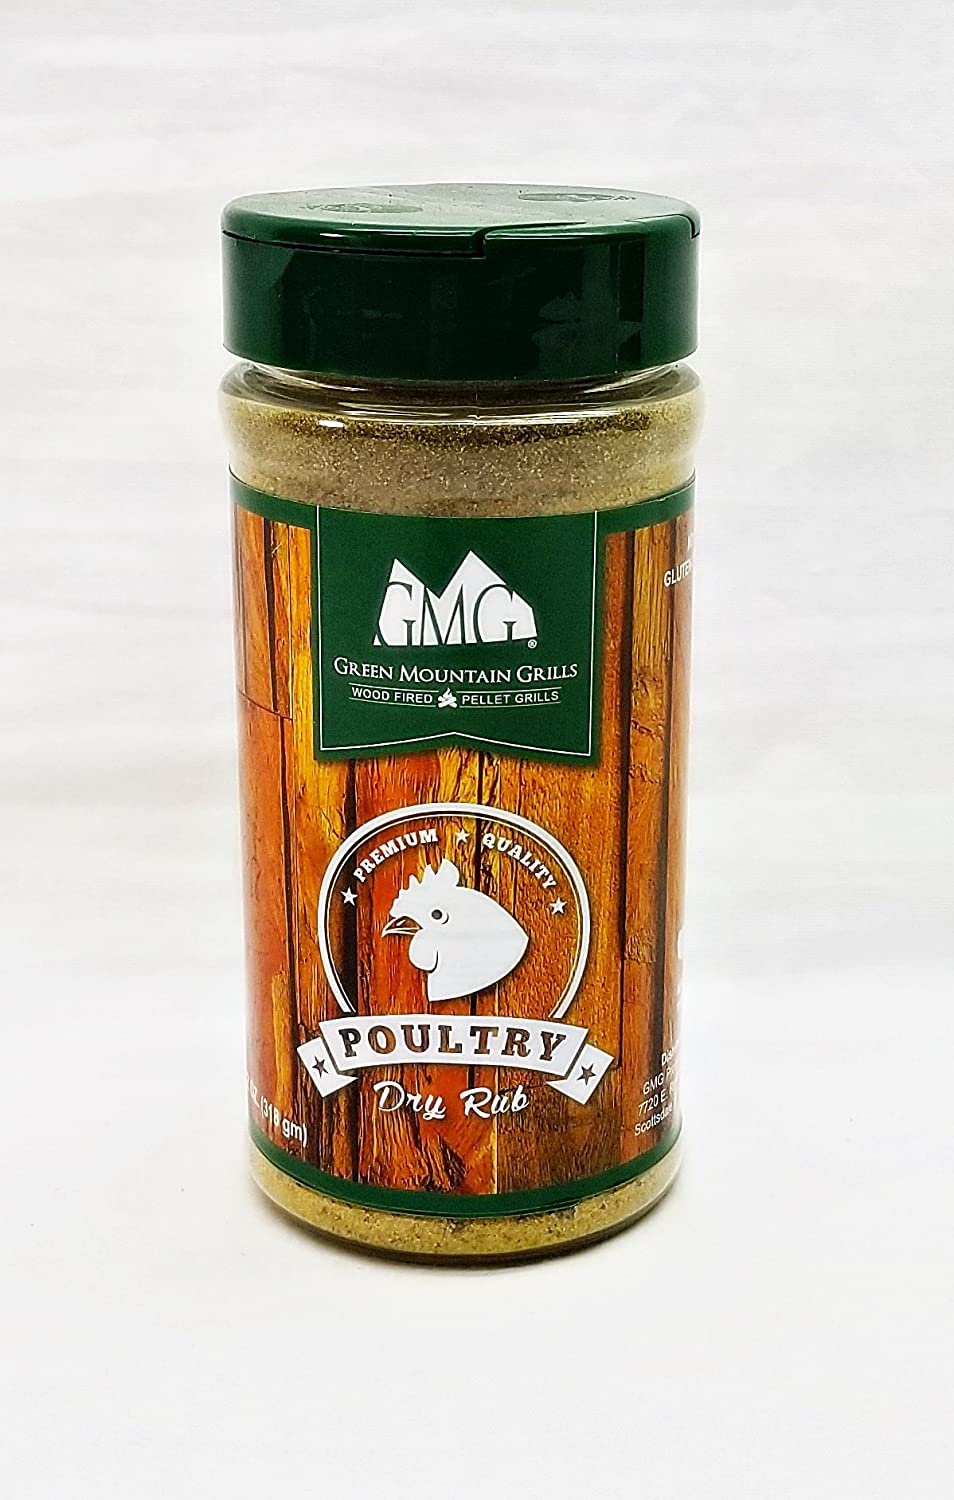 GMG GRILL POULTRY SEASONING DRY All items free shipping GMG-7004 Trust RUB